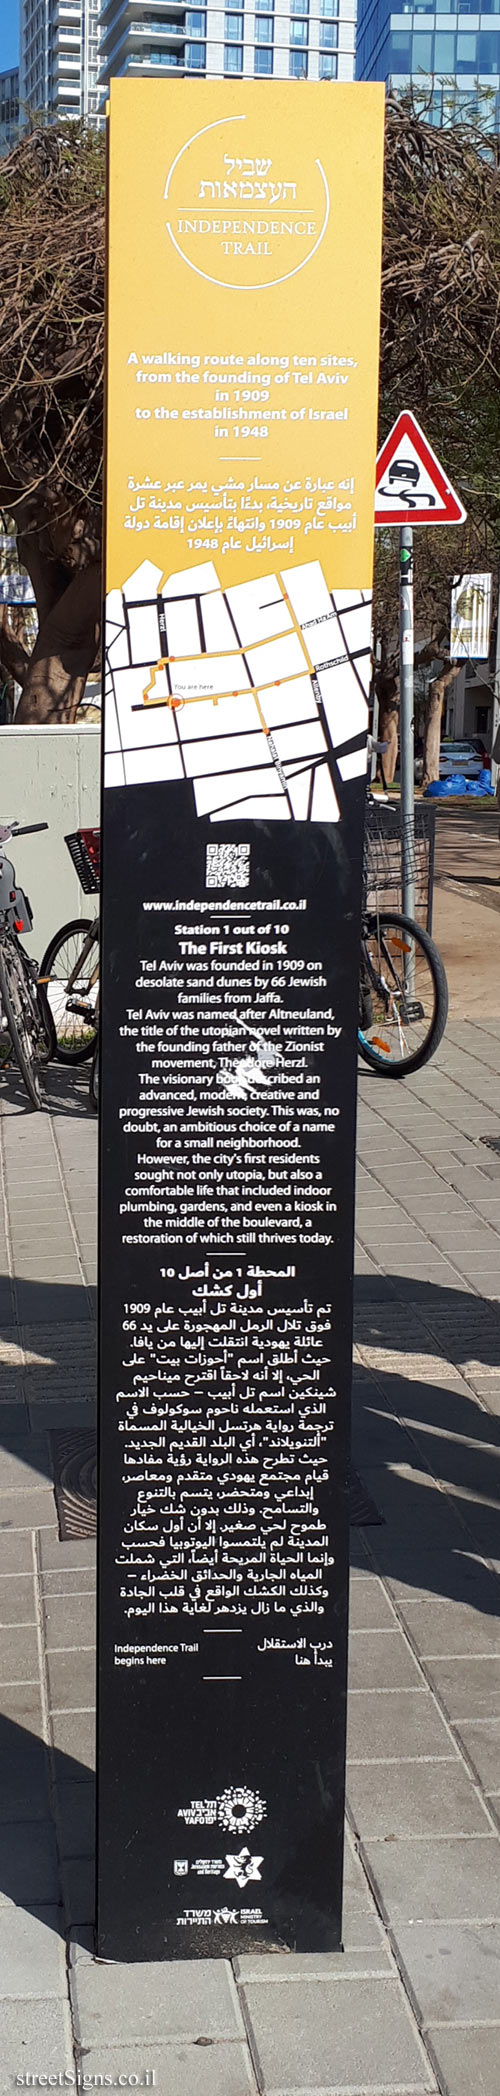 Tel Aviv - Independence Trail - The First Kiosk - Information (English and Arabic)